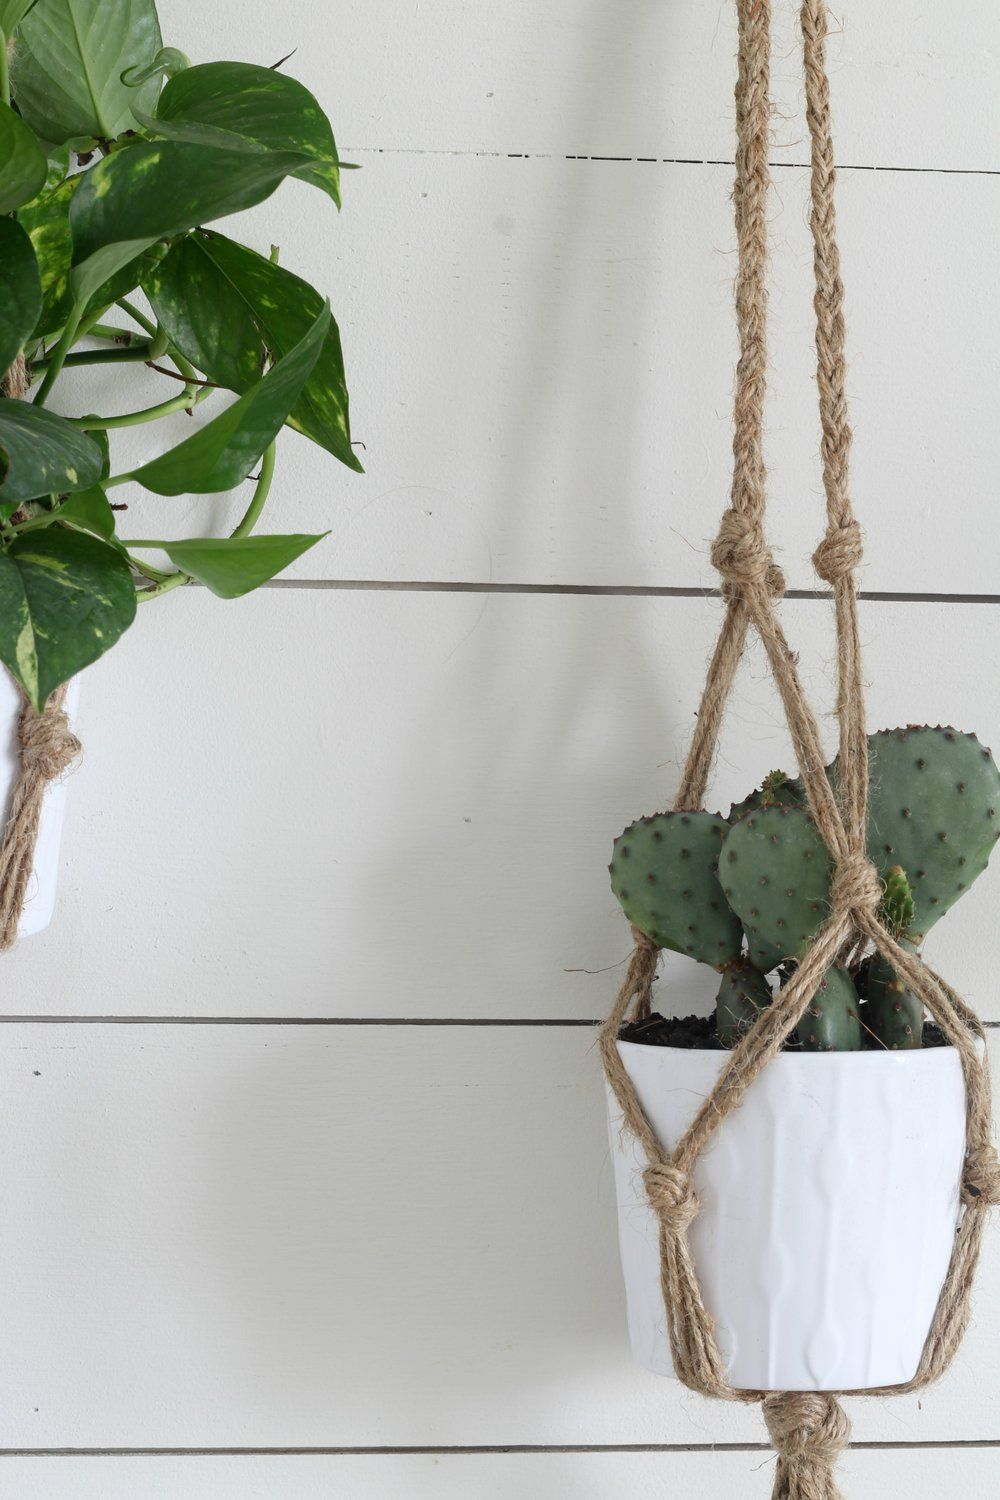 Simple Diy Macrame Plant Hanger With Video Tutorial Diy Macrame Plant Hanger Macrame Plant Hanger Plant Hanger